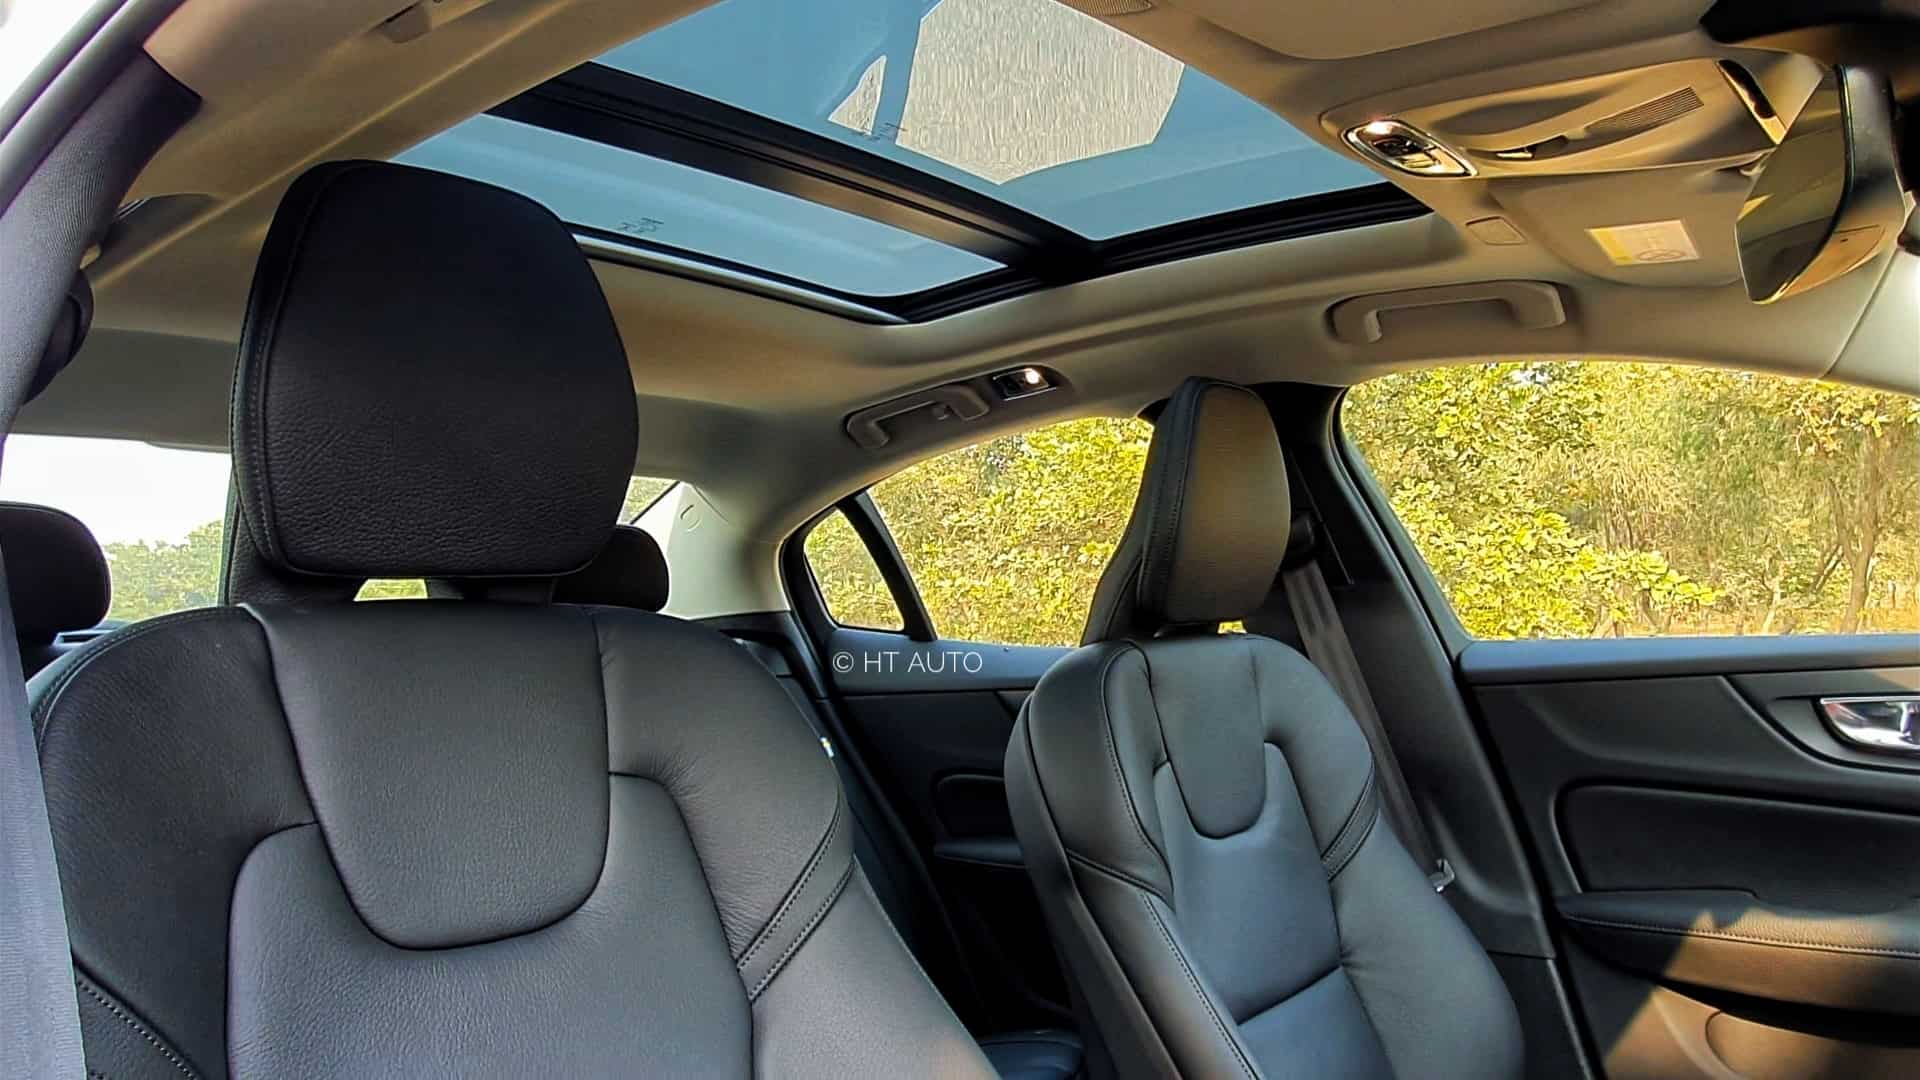 The front seats also come with lumber support adjustments, memory function and the under-thigh support can be extended. There is also a large panoramic sunroof in the sedan.